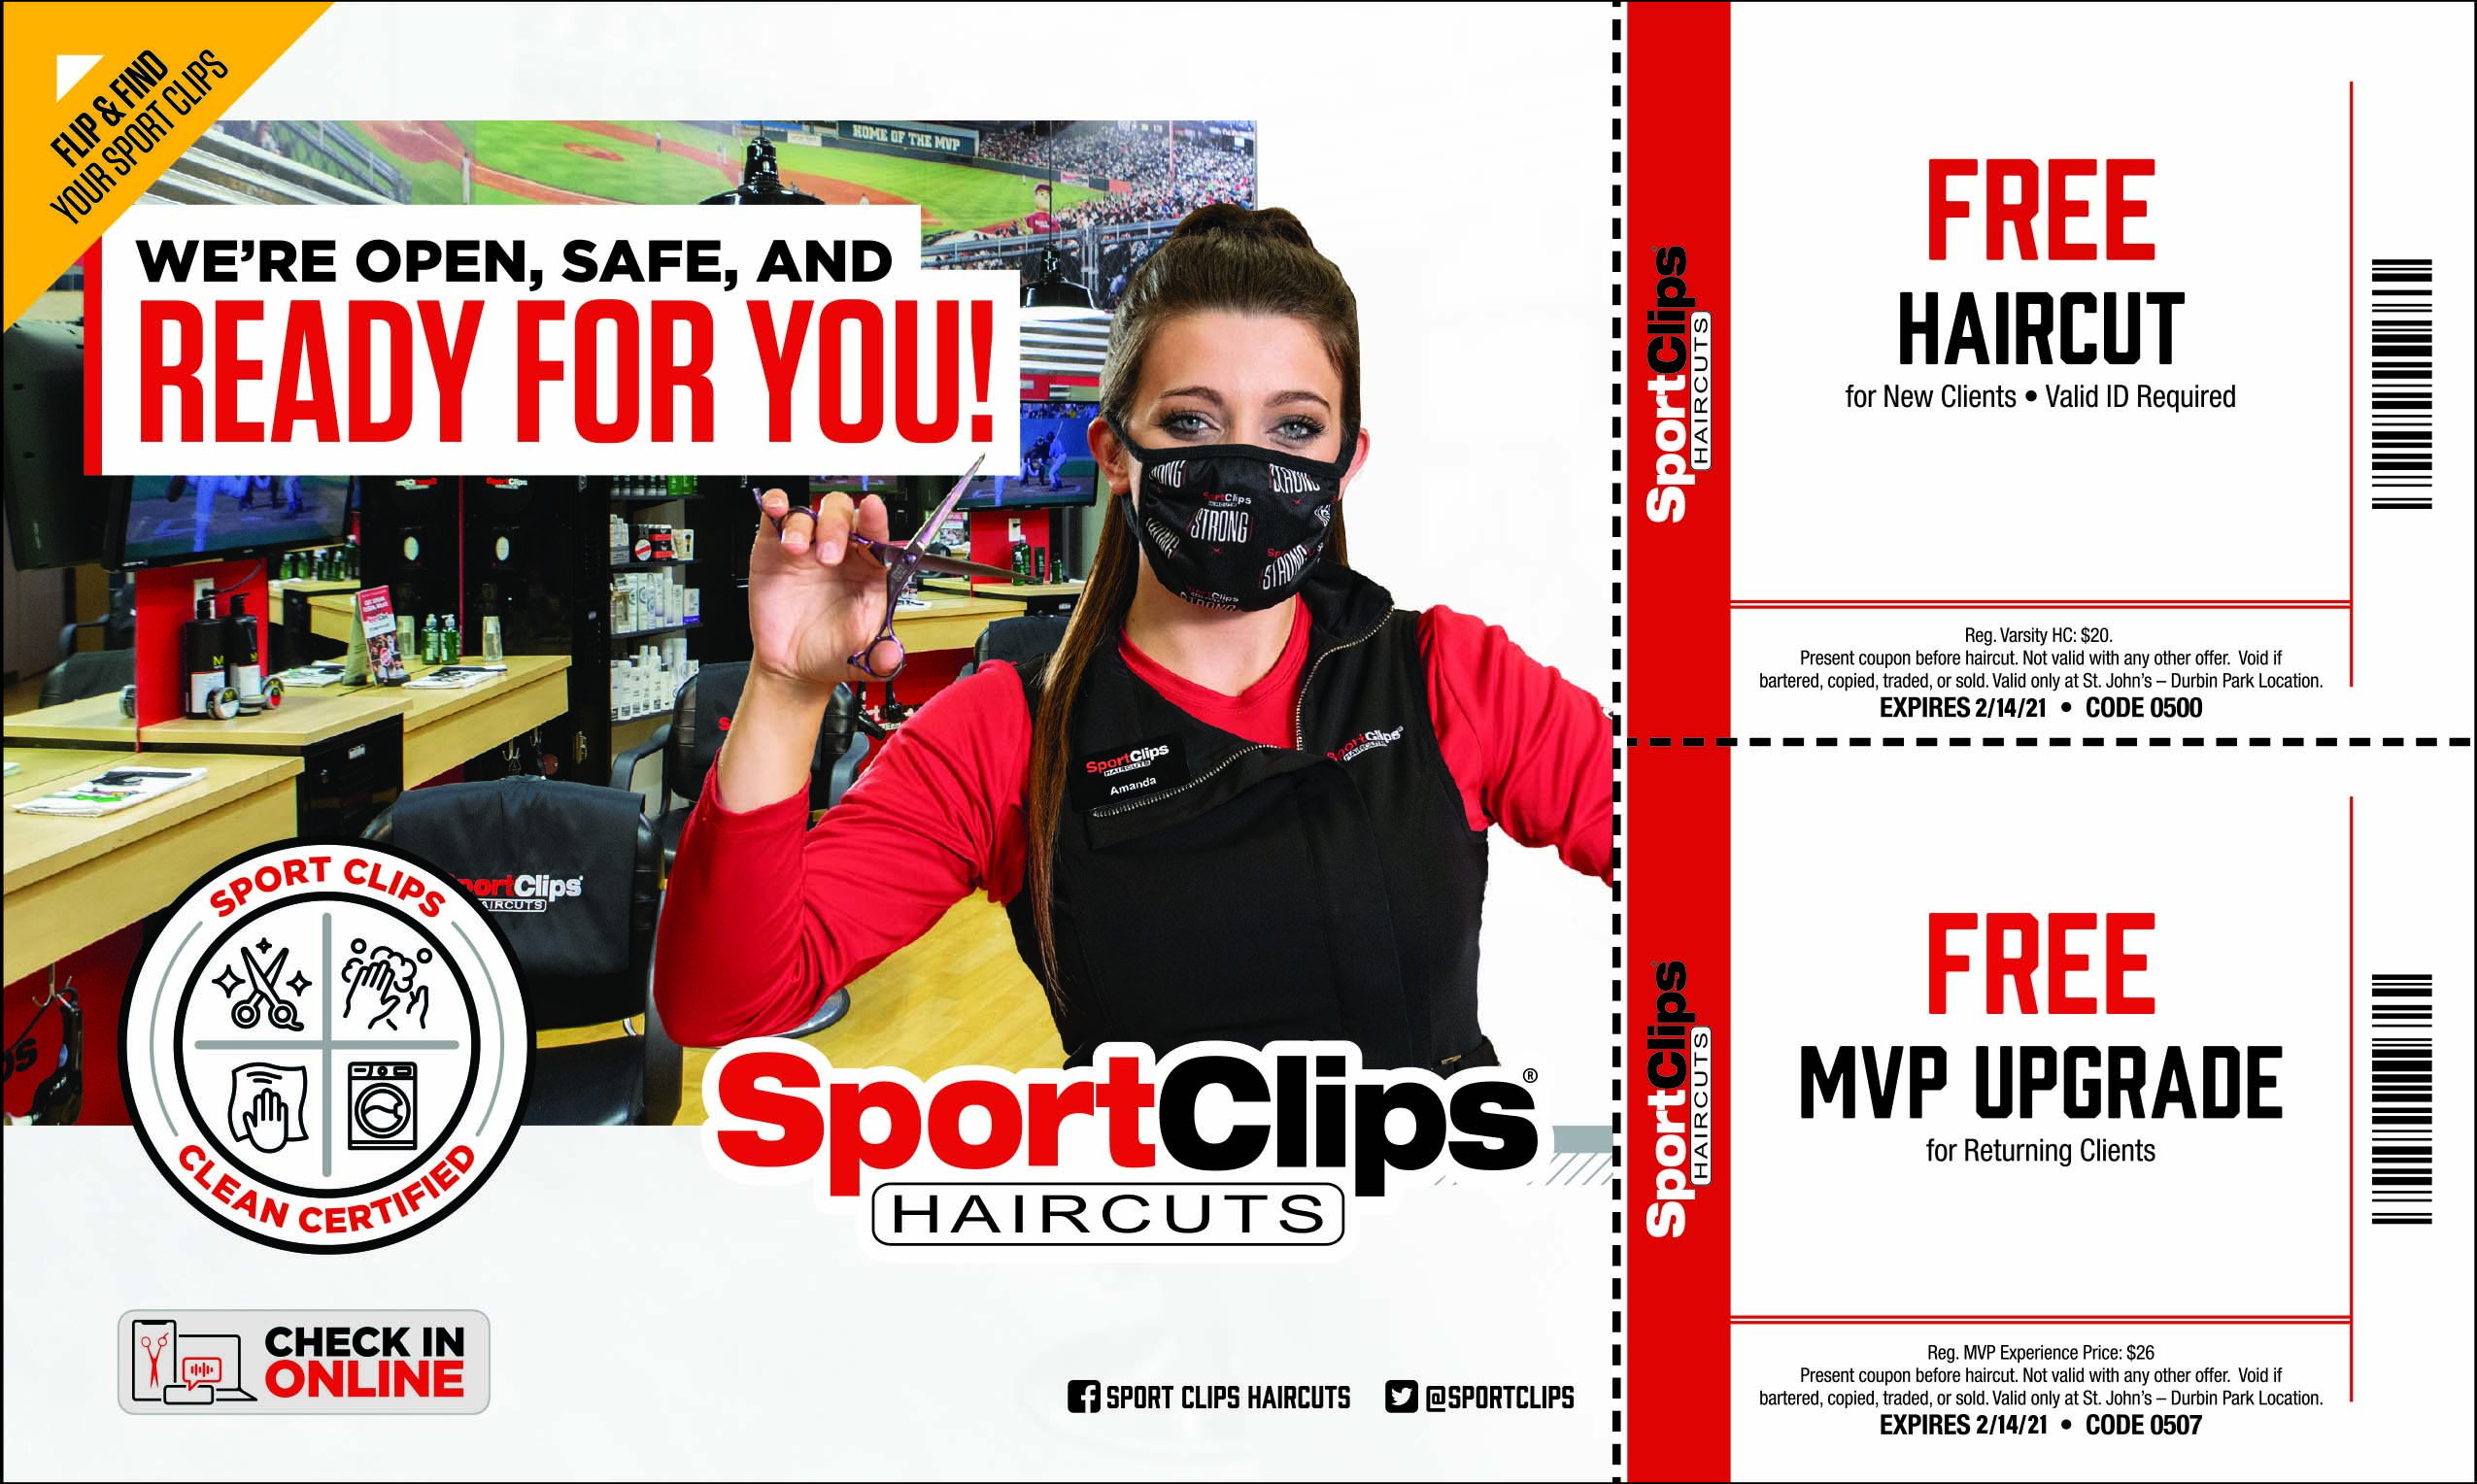 Sportclips! we are open, safe, and ready for you.